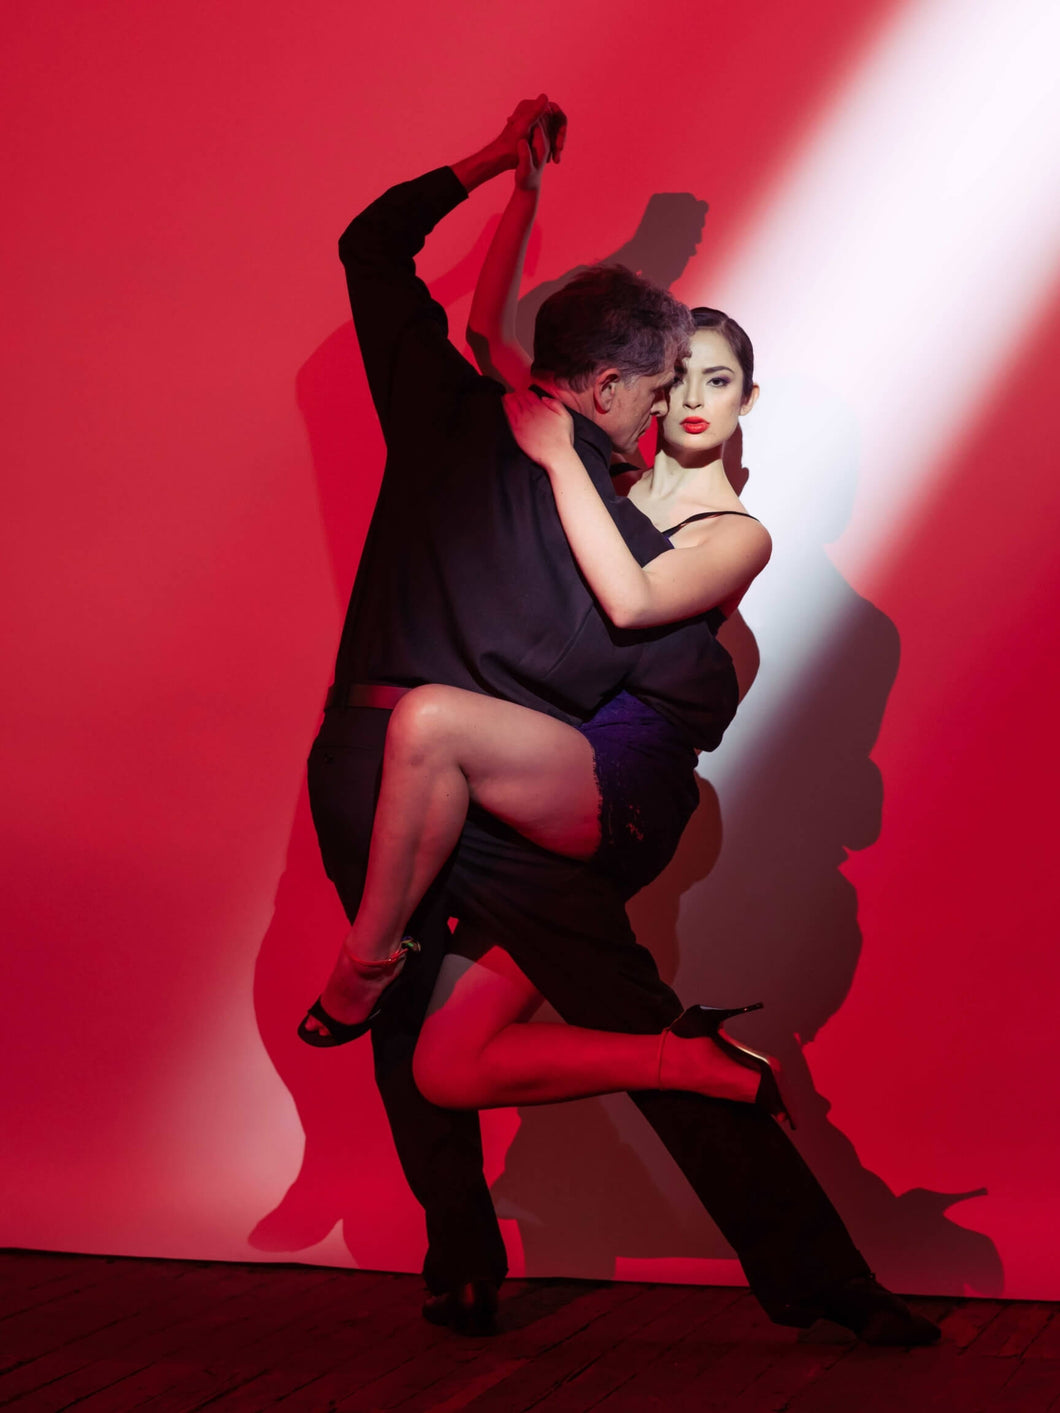 Rojo Tango - Argentine Tango Red Shadows, Tanguera in the Spotlight- Latin Dance Poster - Performance